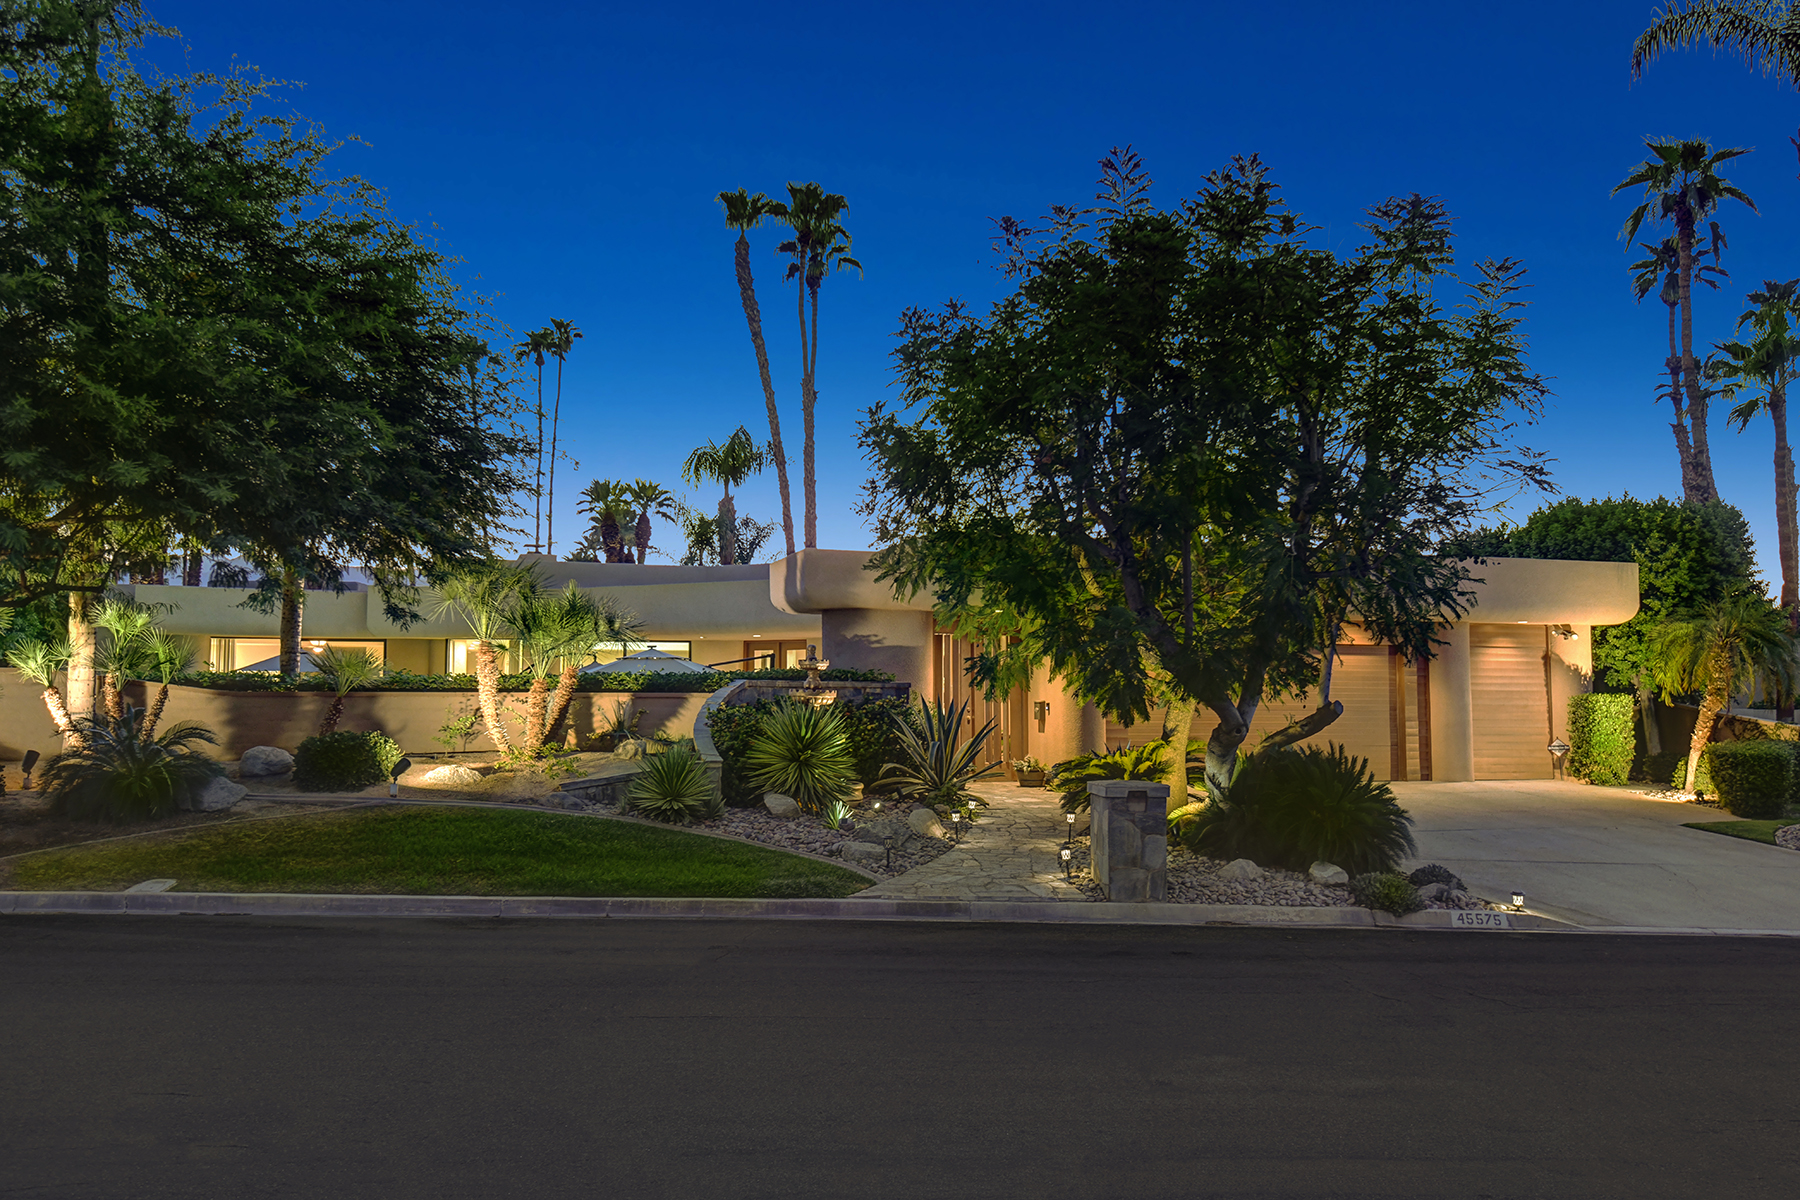 Single Family Homes for Sale at 45575 Alta Colina Way Indian Wells, California 92210 United States